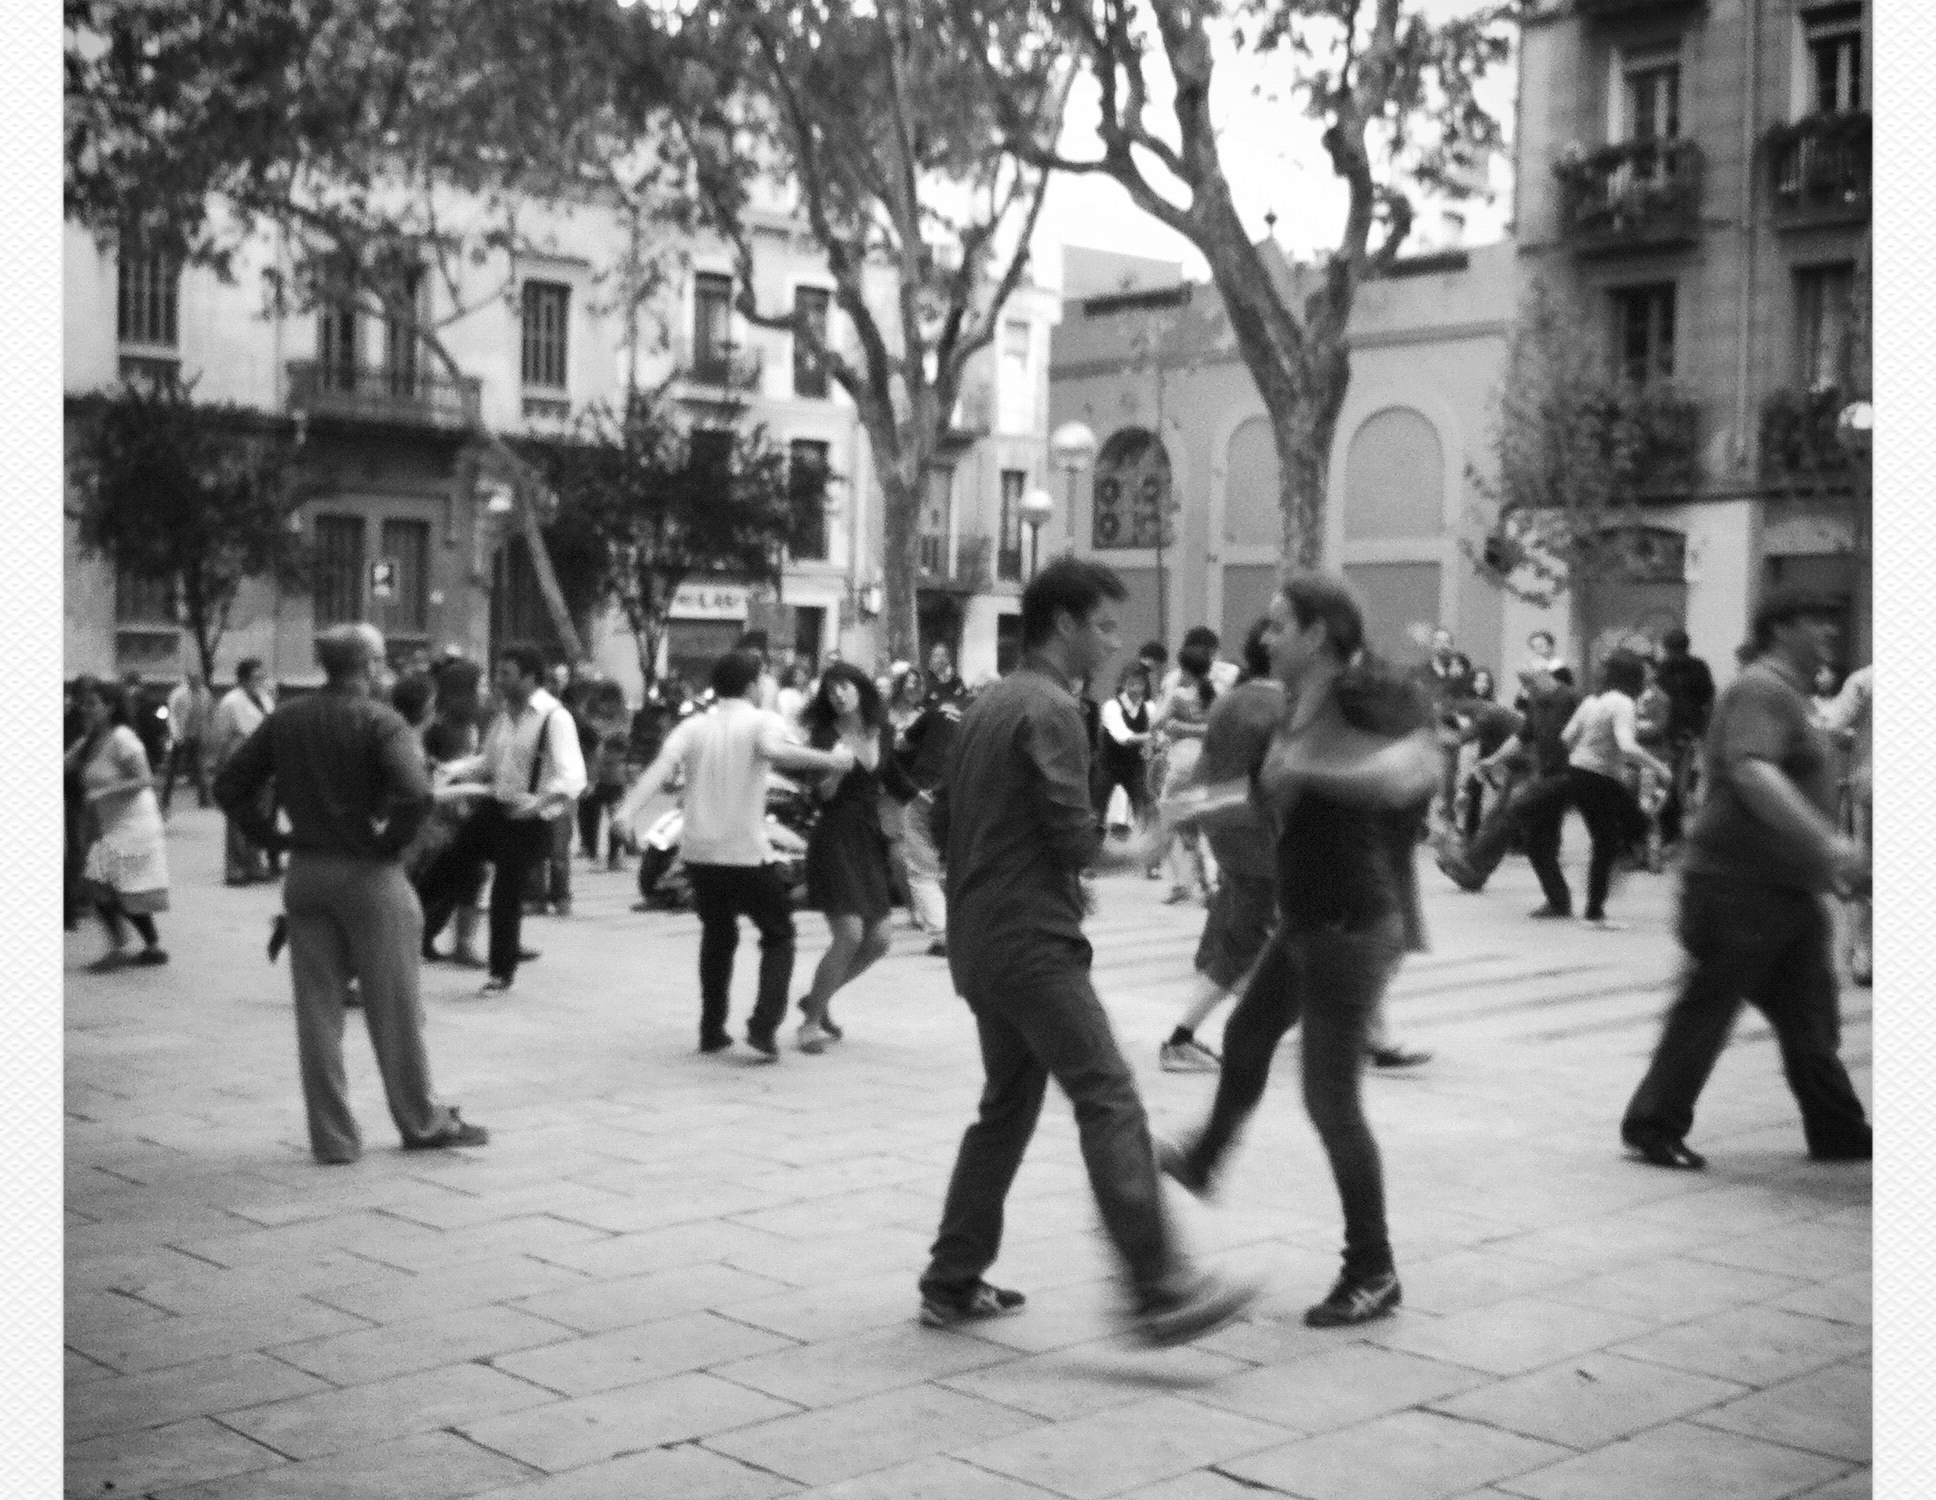 people dancing swing on a town square